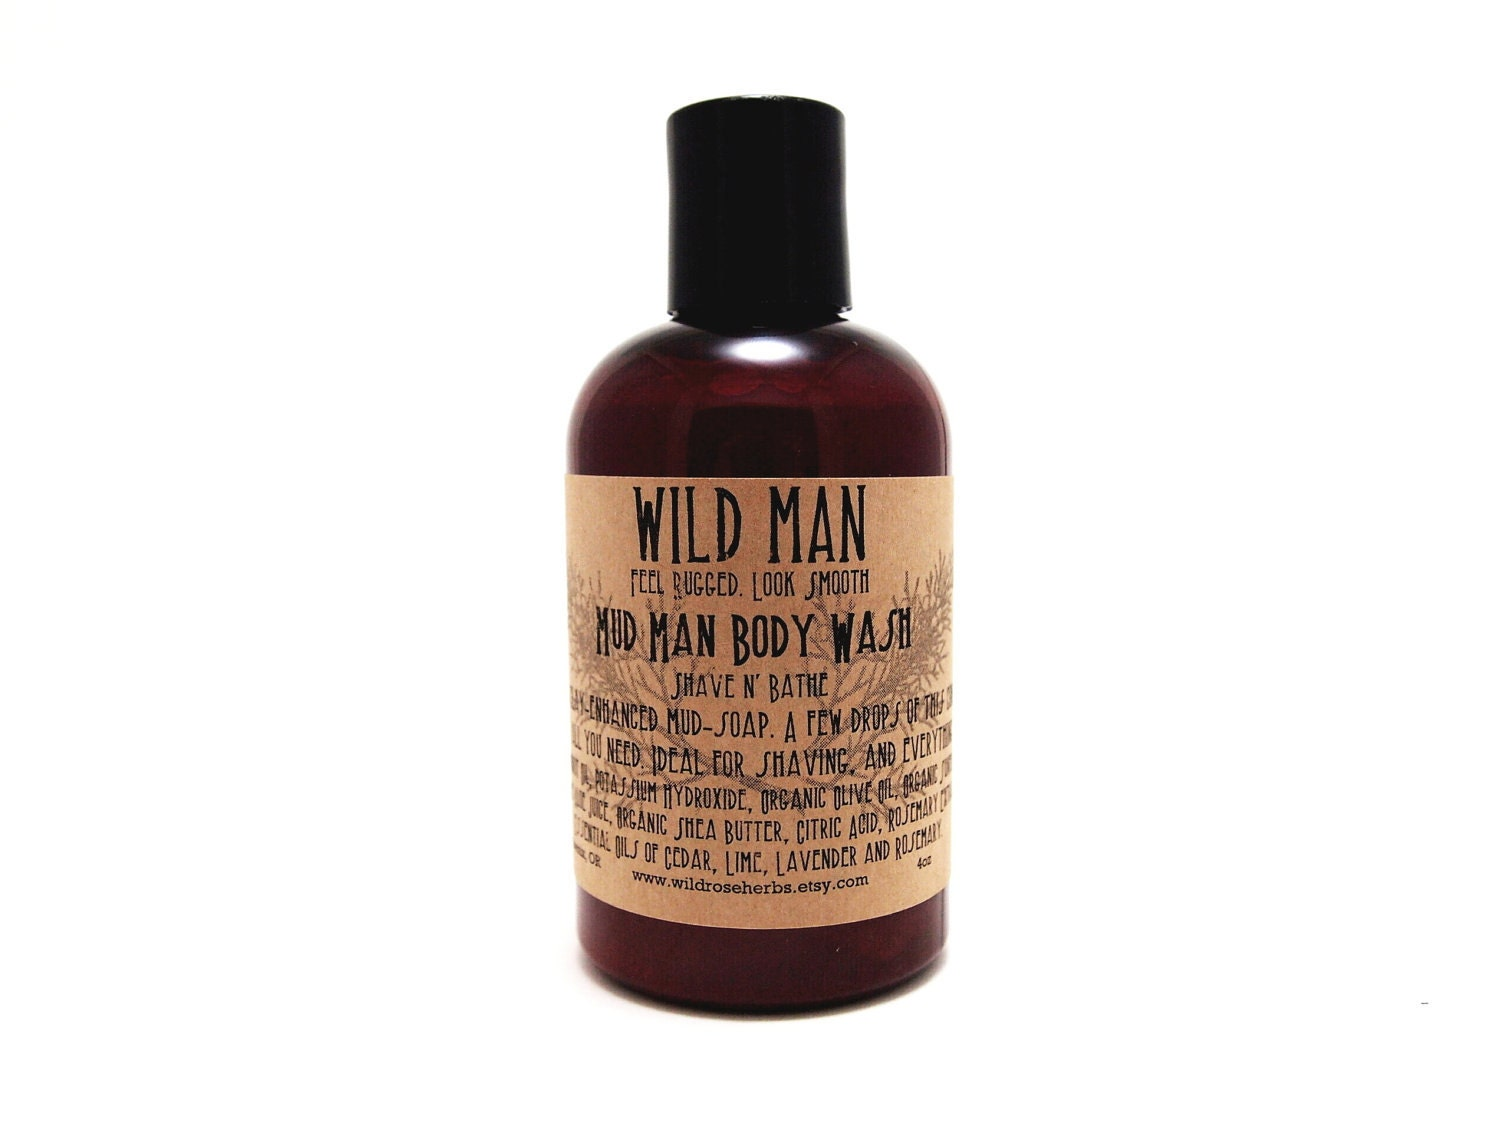 Man Shaving Soap Father's Day Detox Body Wash Clay Soap Wild Man 4oz - WildRoseHerbs